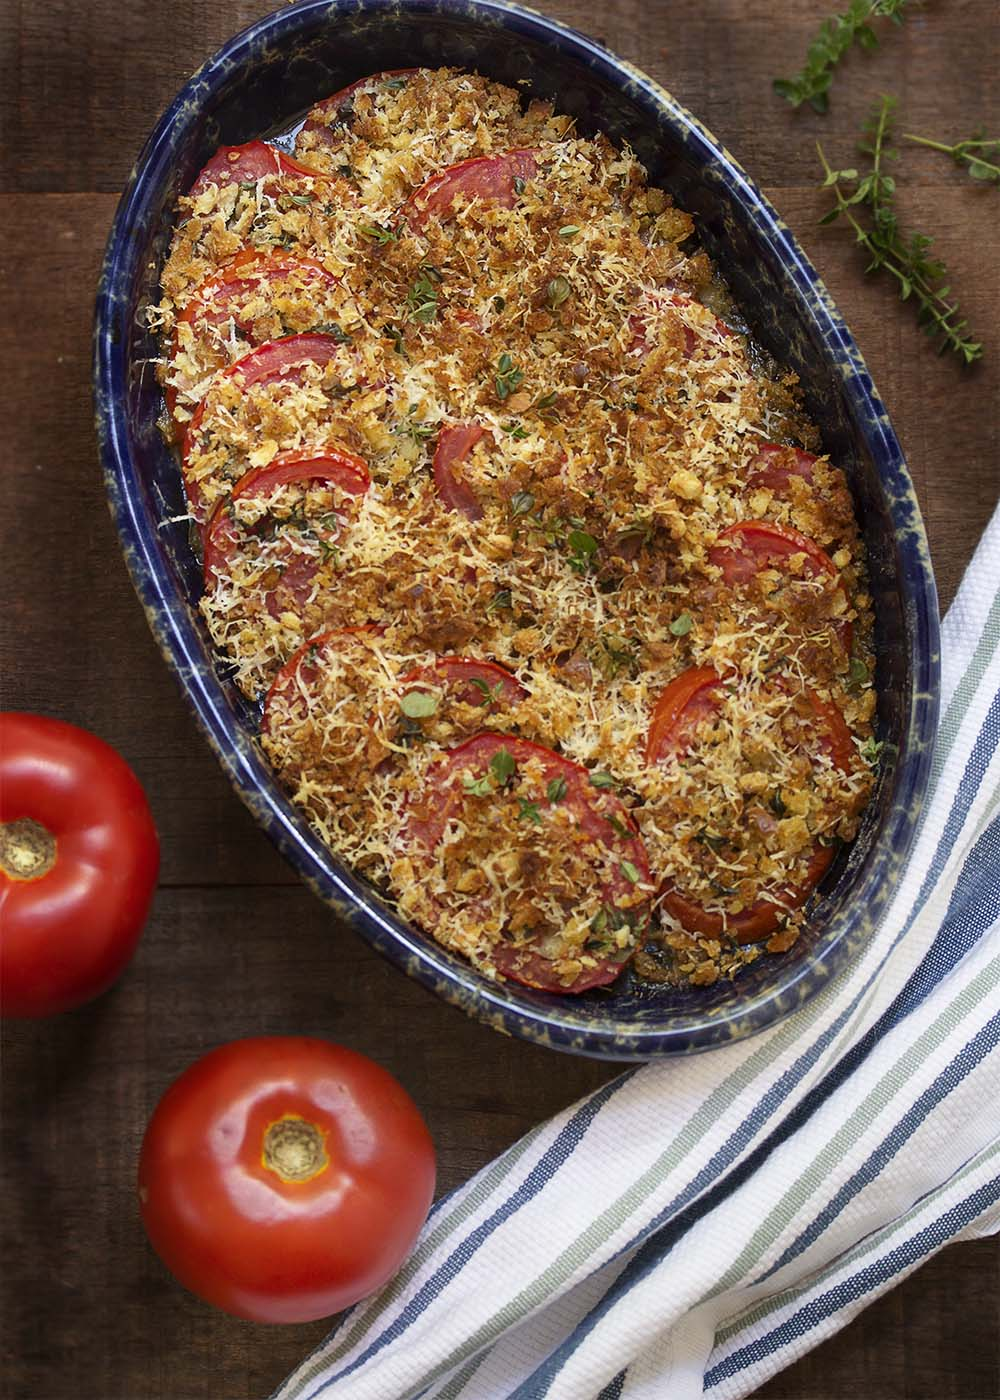 Baked Sliced Tomato Gratin - Fresh, summer tomatoes are best cooked simply like in this tomato gratin of sliced tomatoes layered with olive oil and herbs and then topped with parmesan breadcrumbs. | justalittlebitofbacon.com